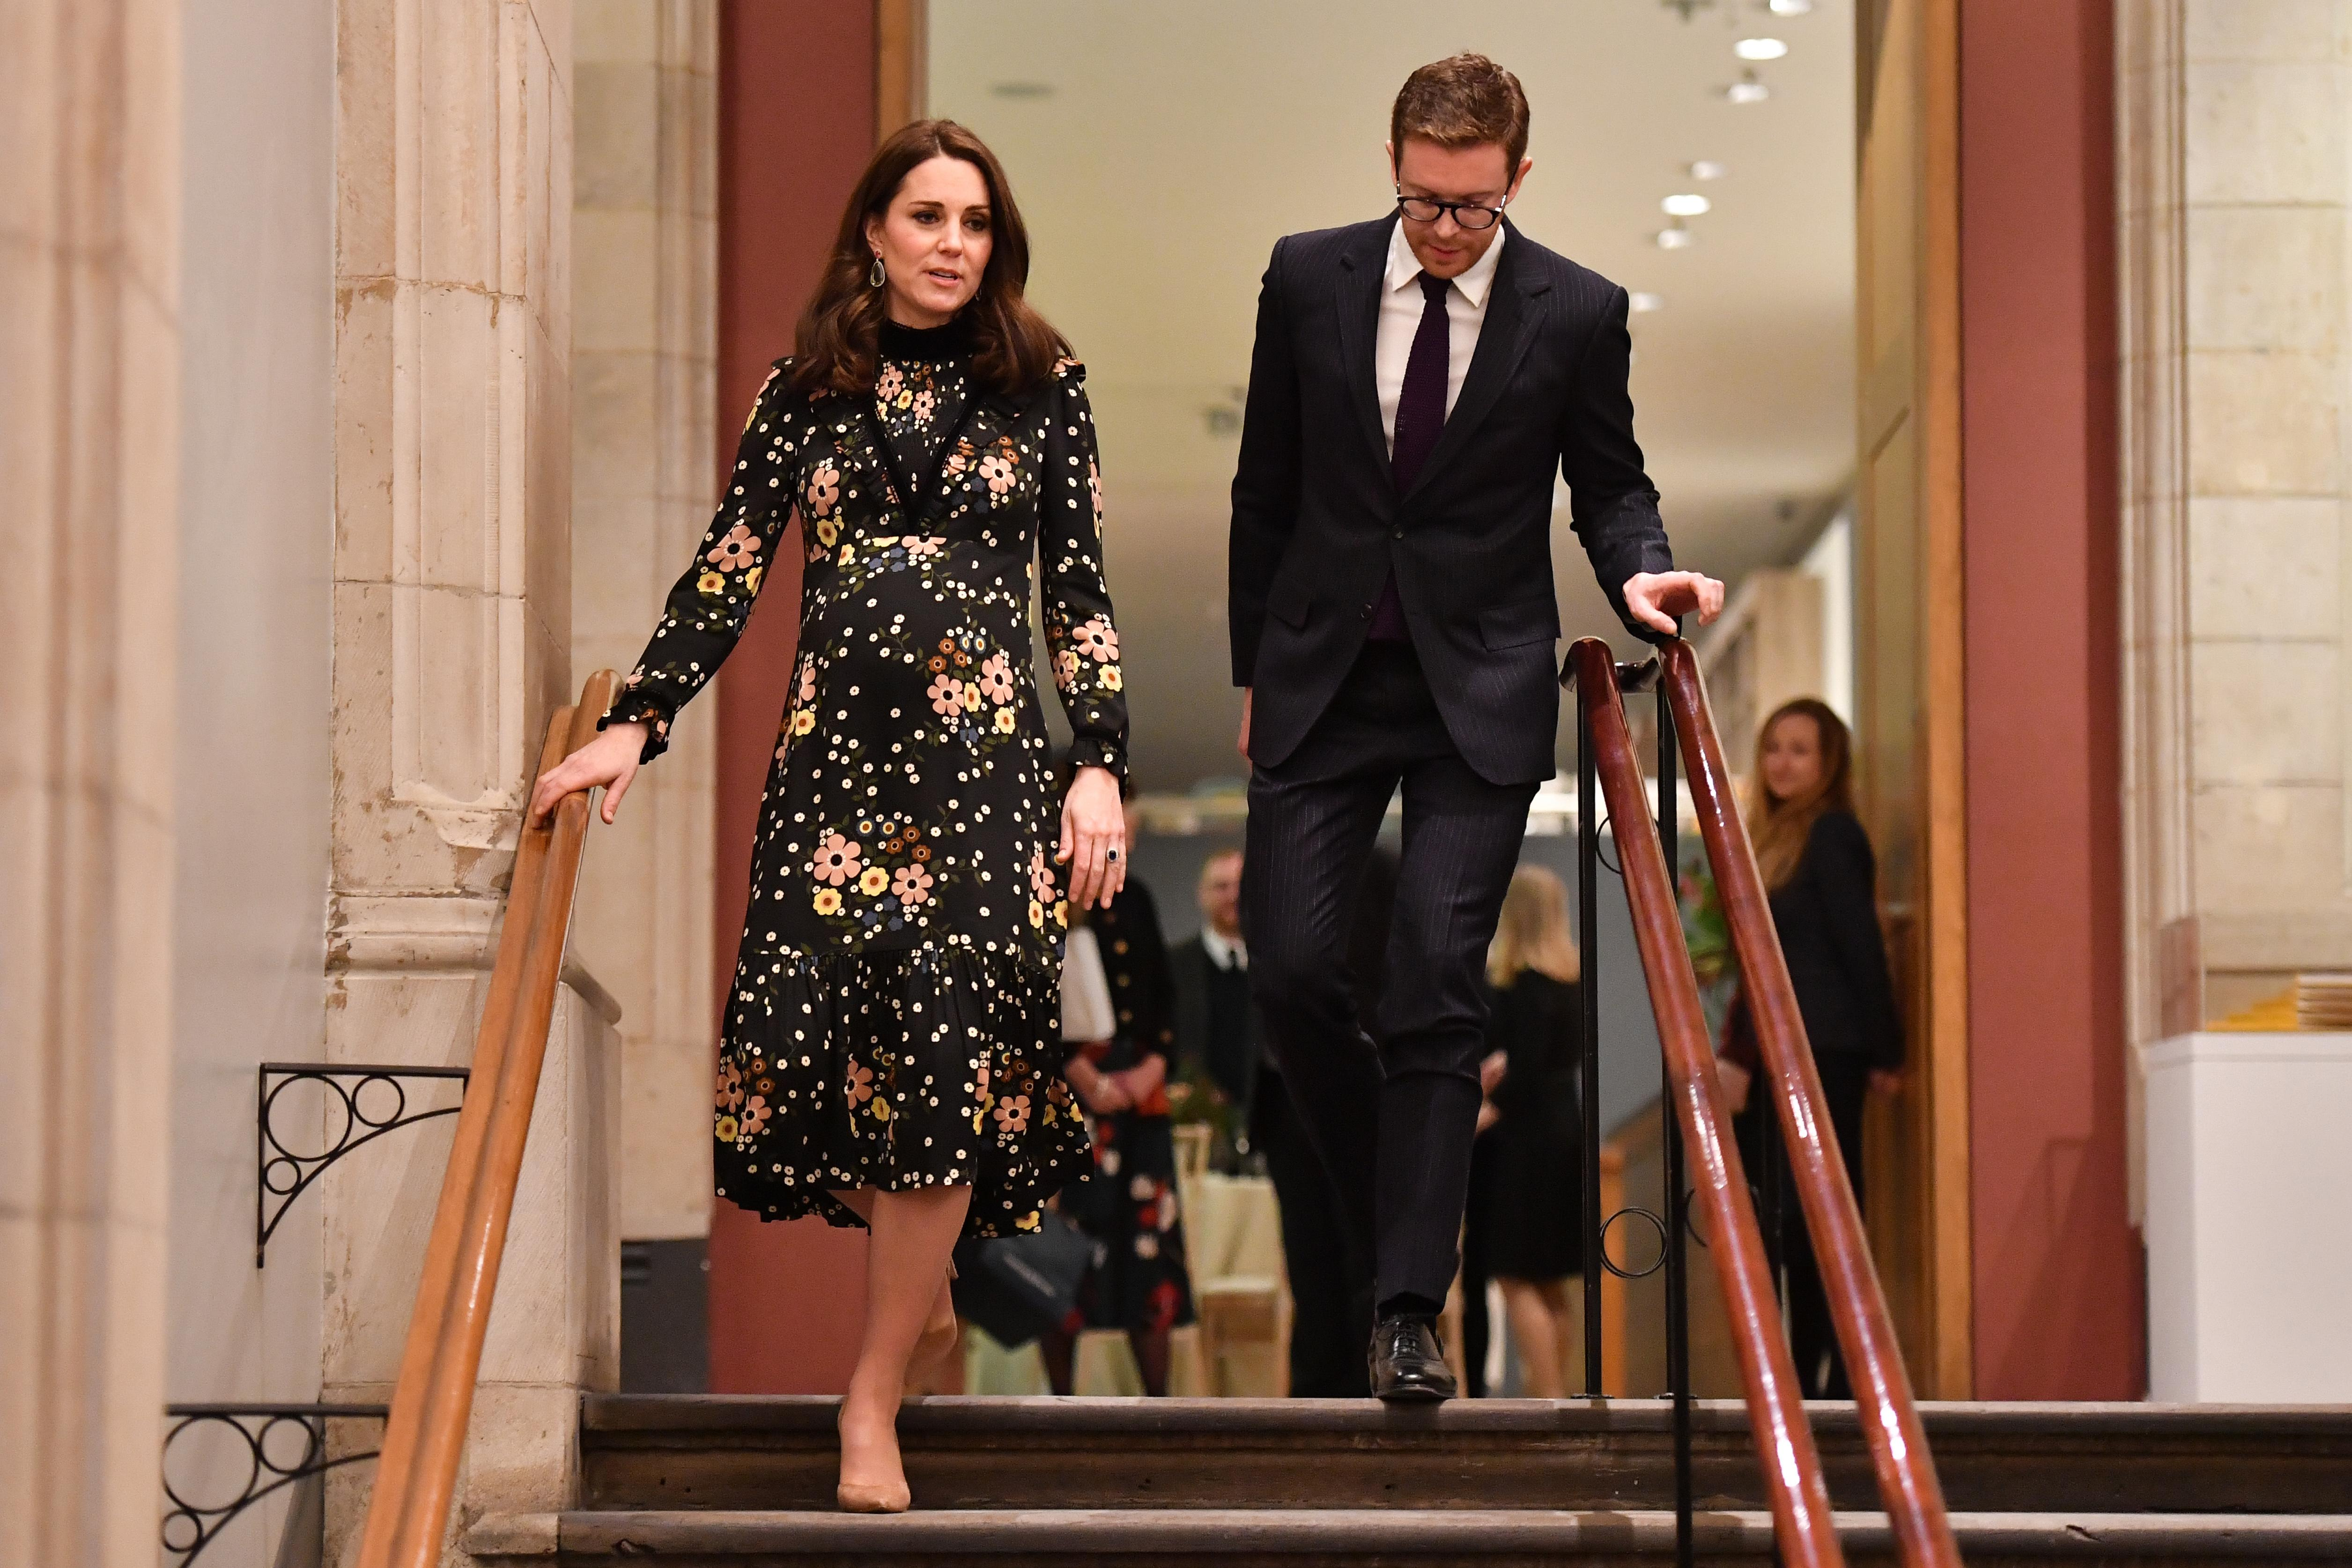 Kate Middleton's Style at the National Portrait Gallery in London.